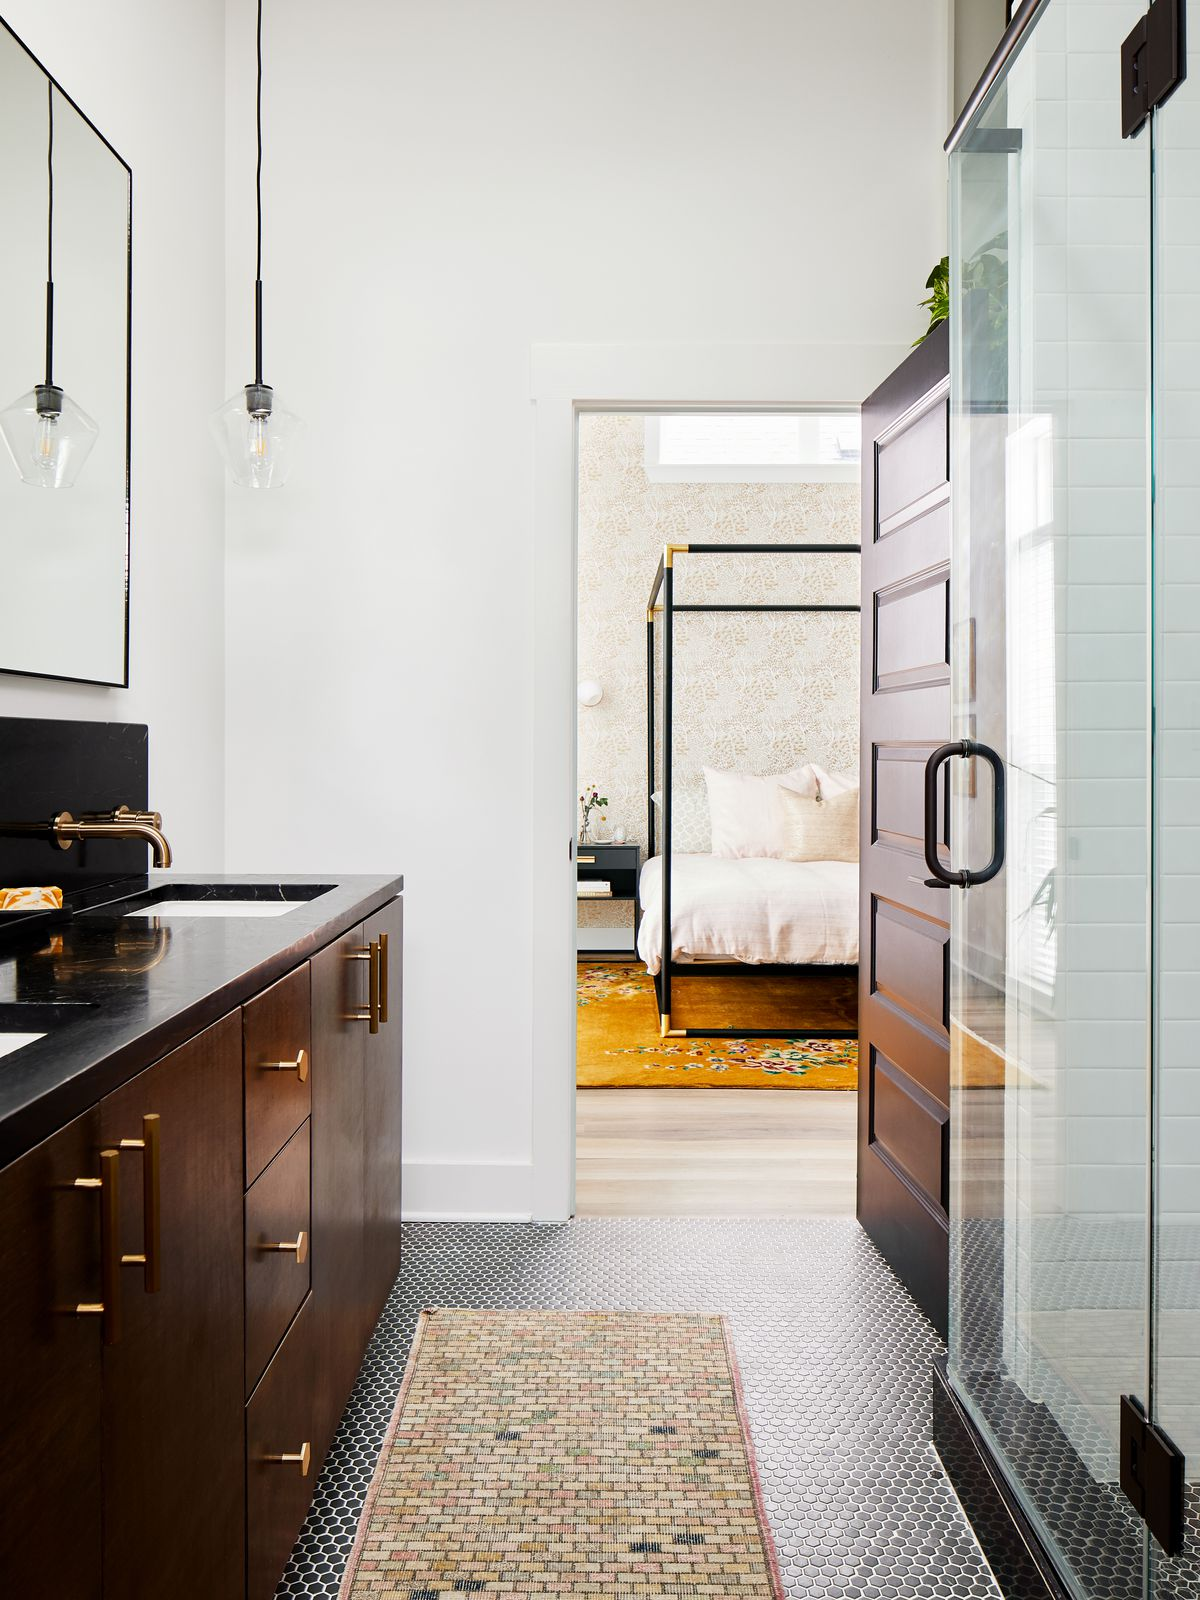 A bathroom with dark colored wooden cabinetry. The floor tiles are black and the walls are painted white. There is a glass light fixture.